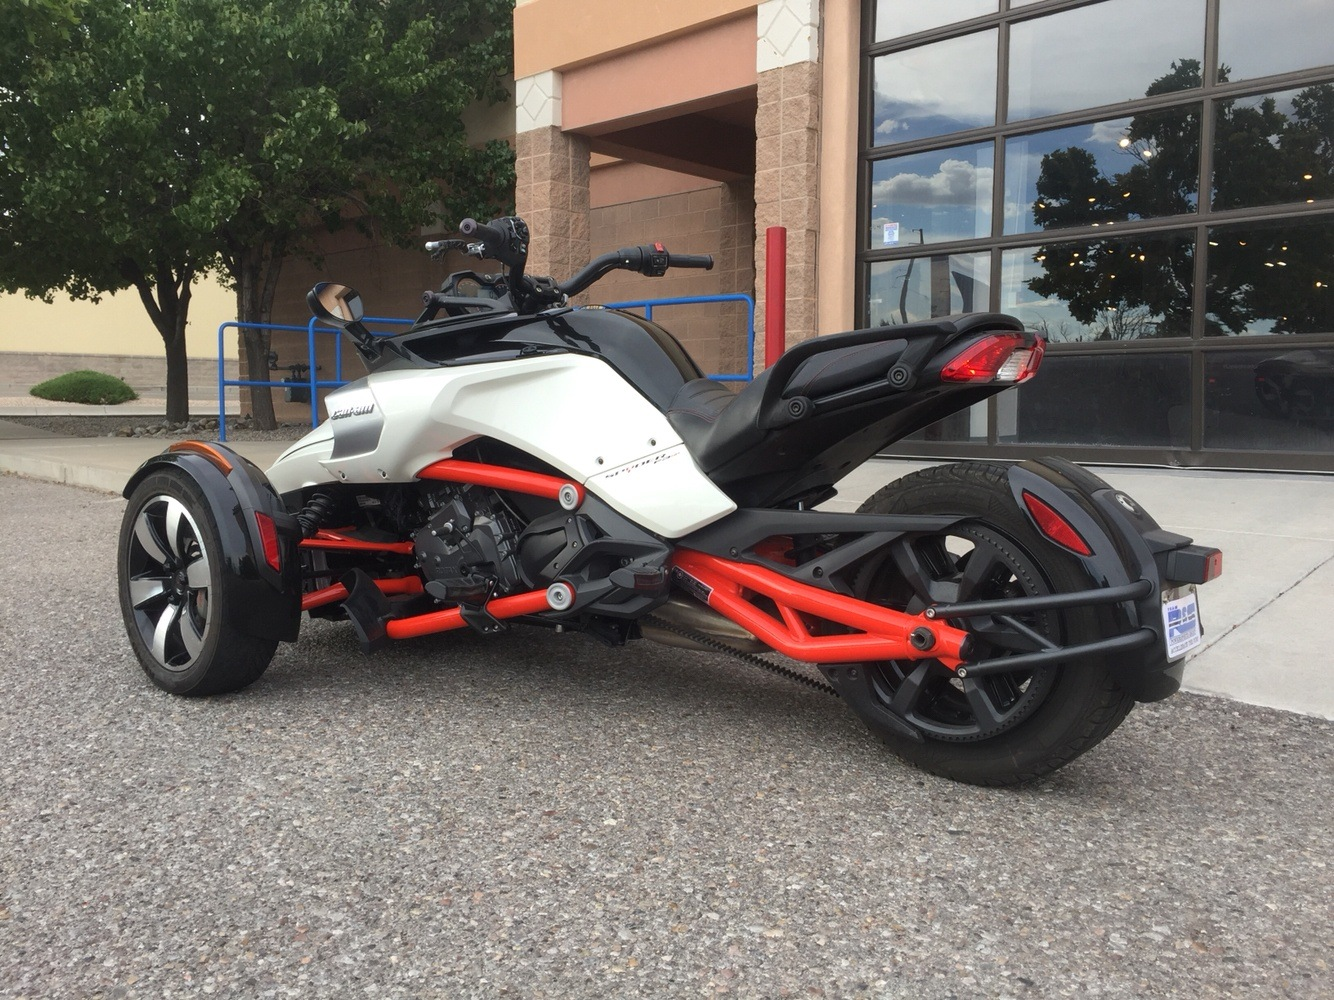 2015 Can-Am Spyder® F3 SM6 in Albuquerque, New Mexico - Photo 2